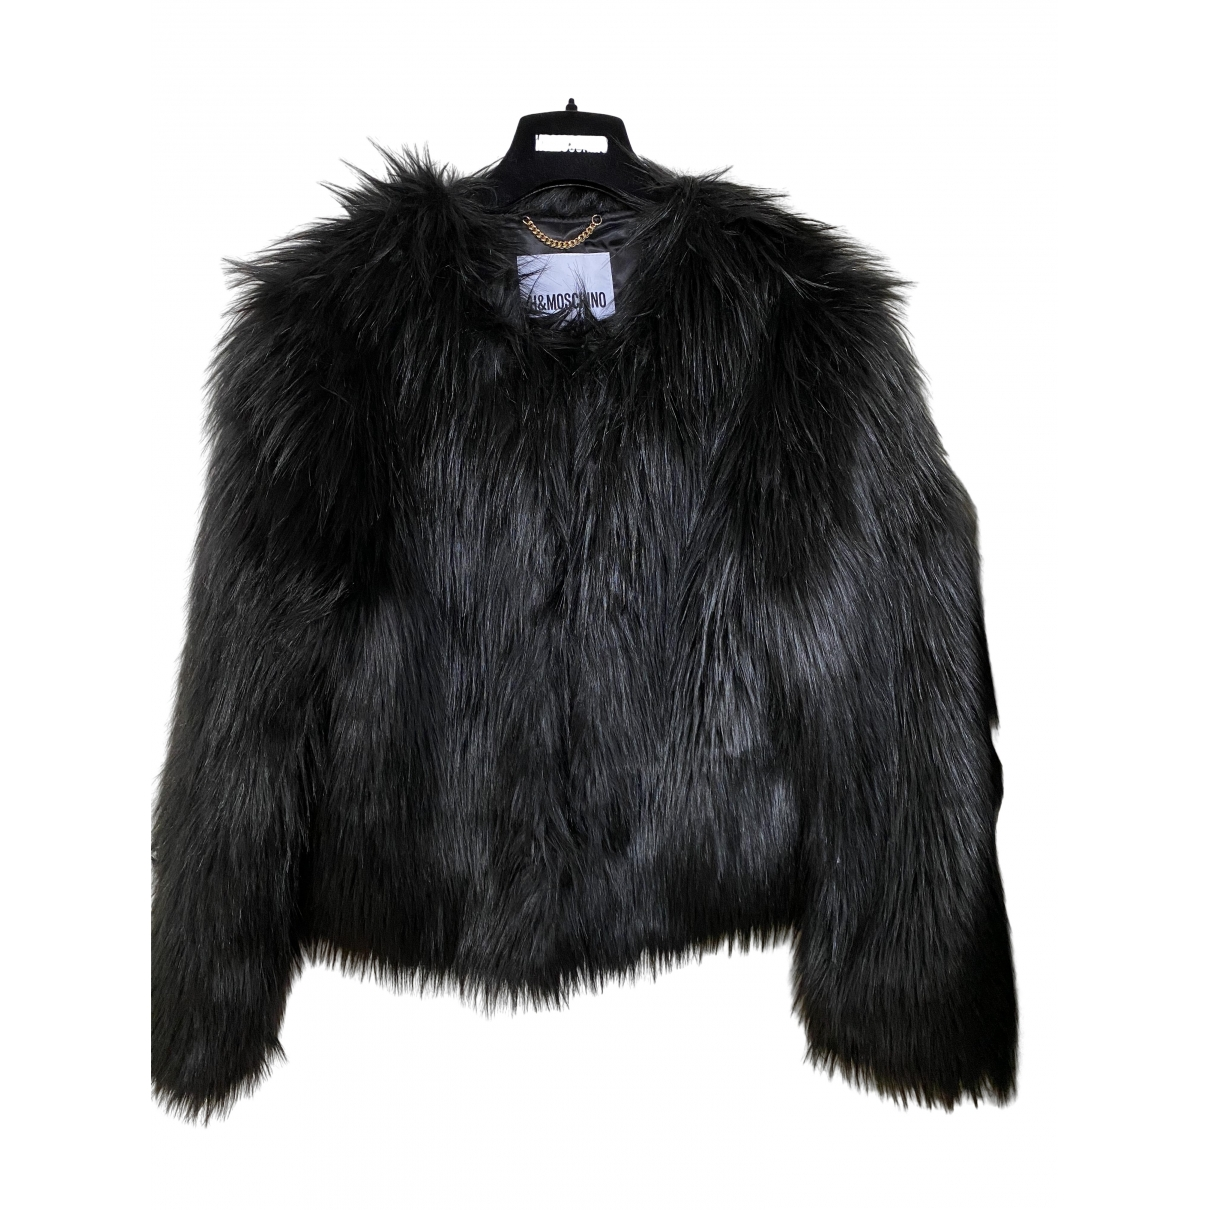 Moschino For H&m \N Black Faux fur jacket for Women S International